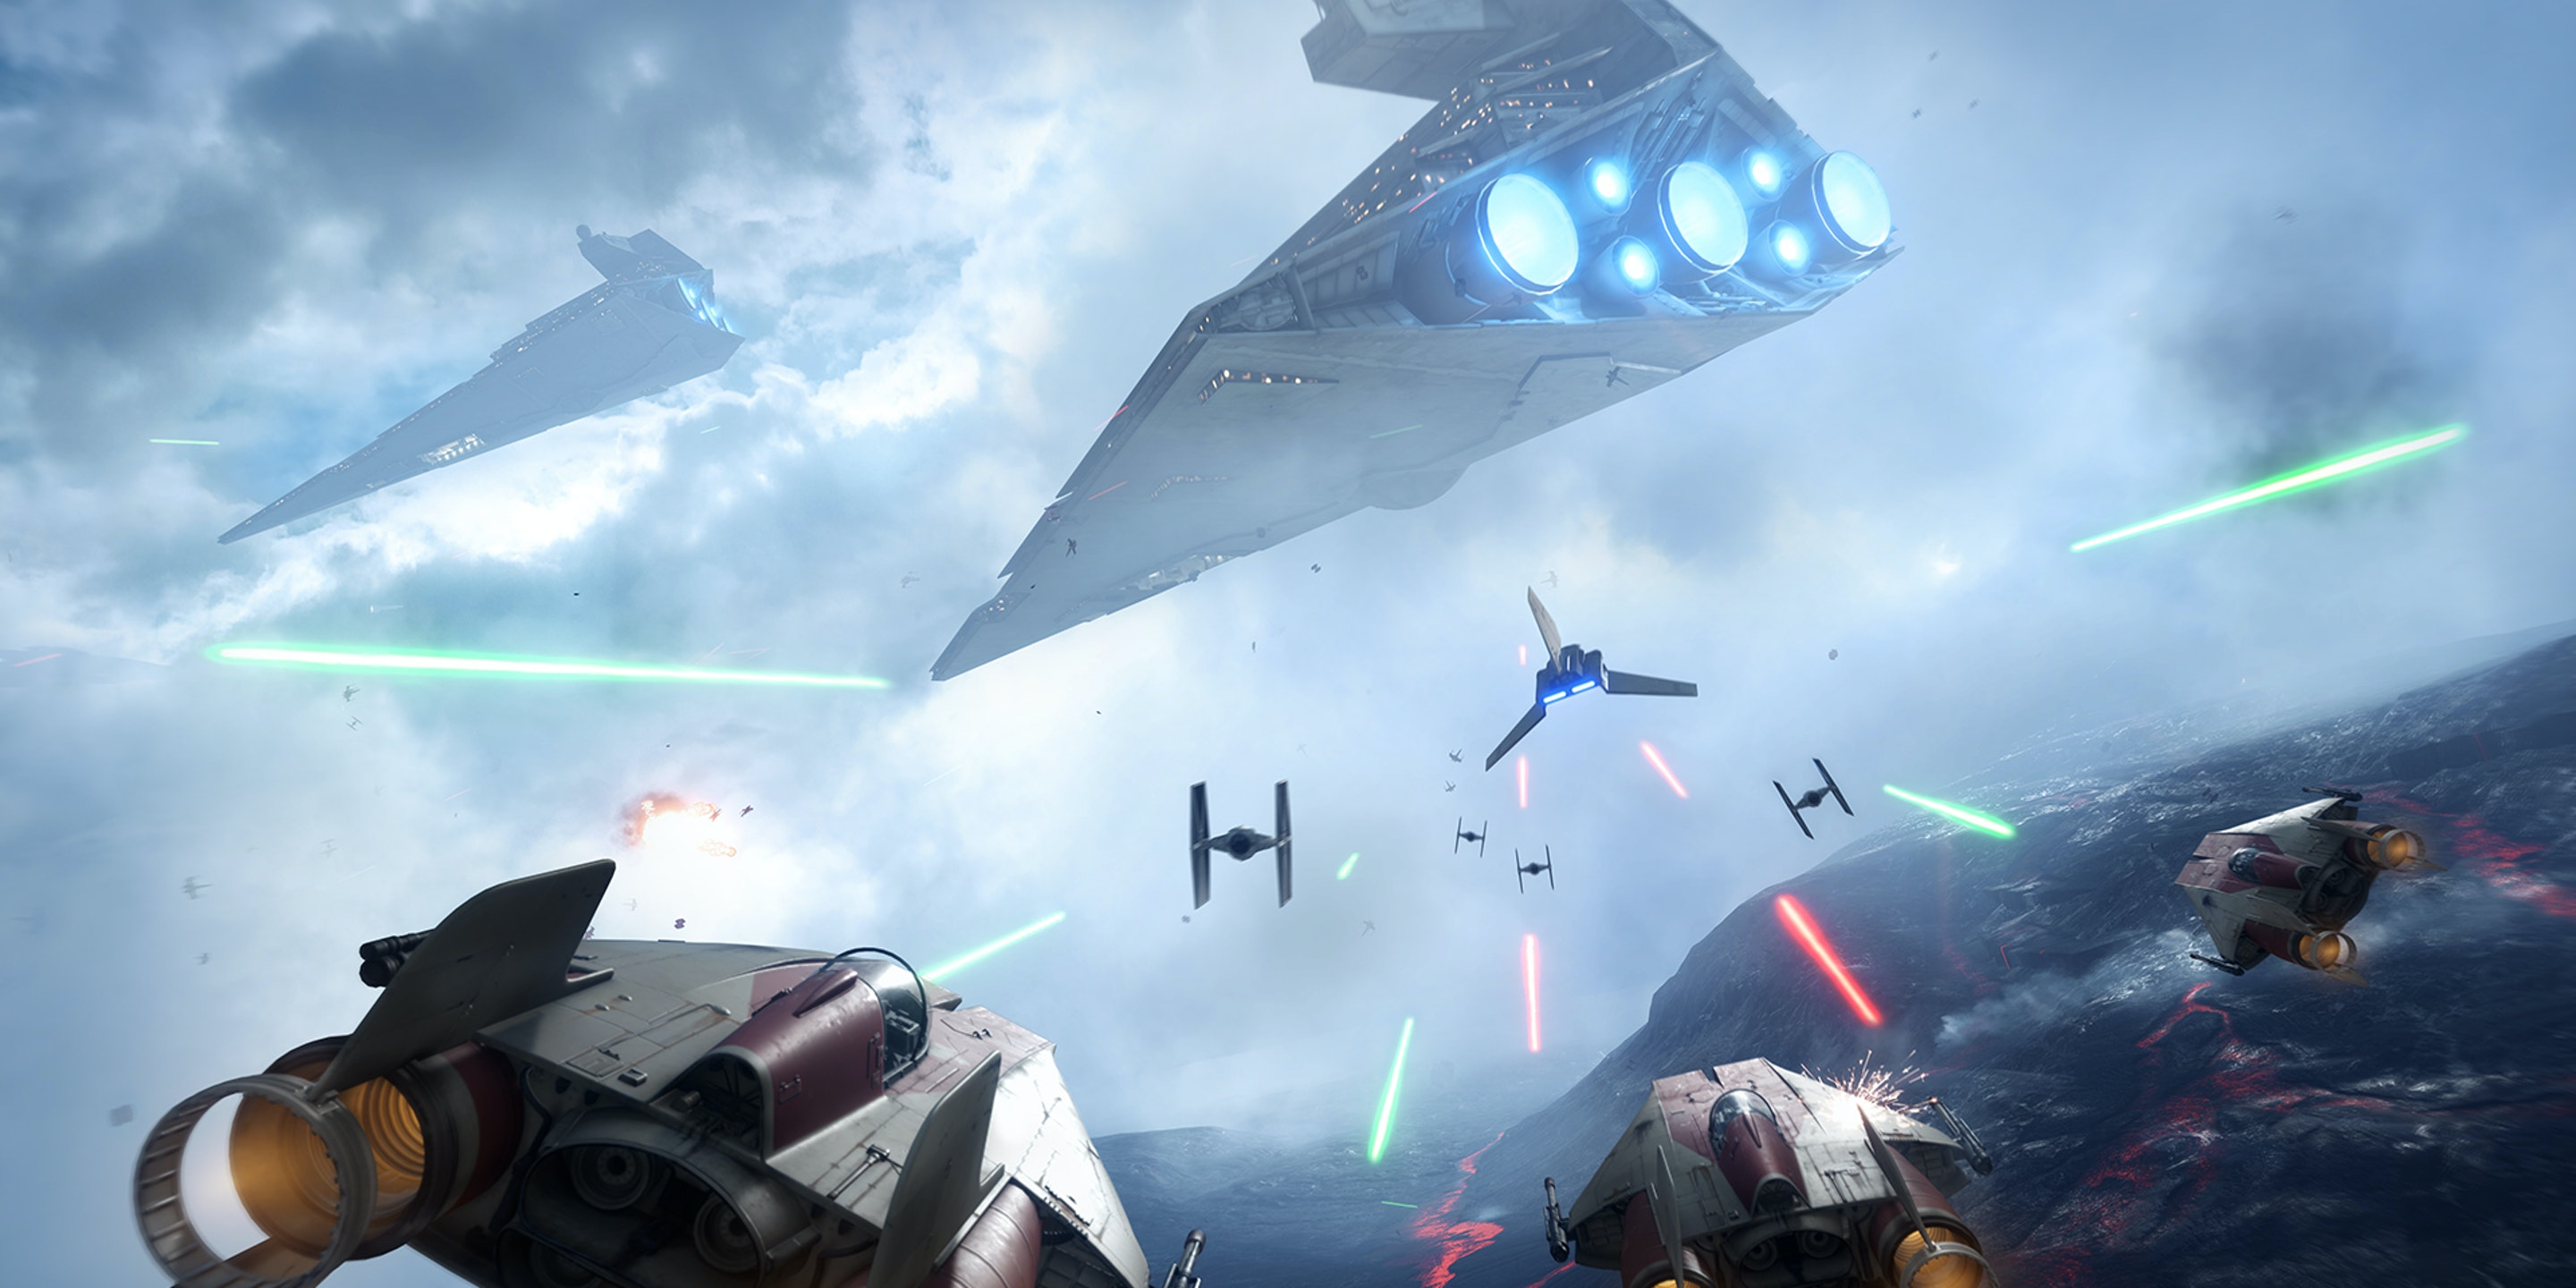 What We'd Like to See in 'Star Wars Battlefront's DLC